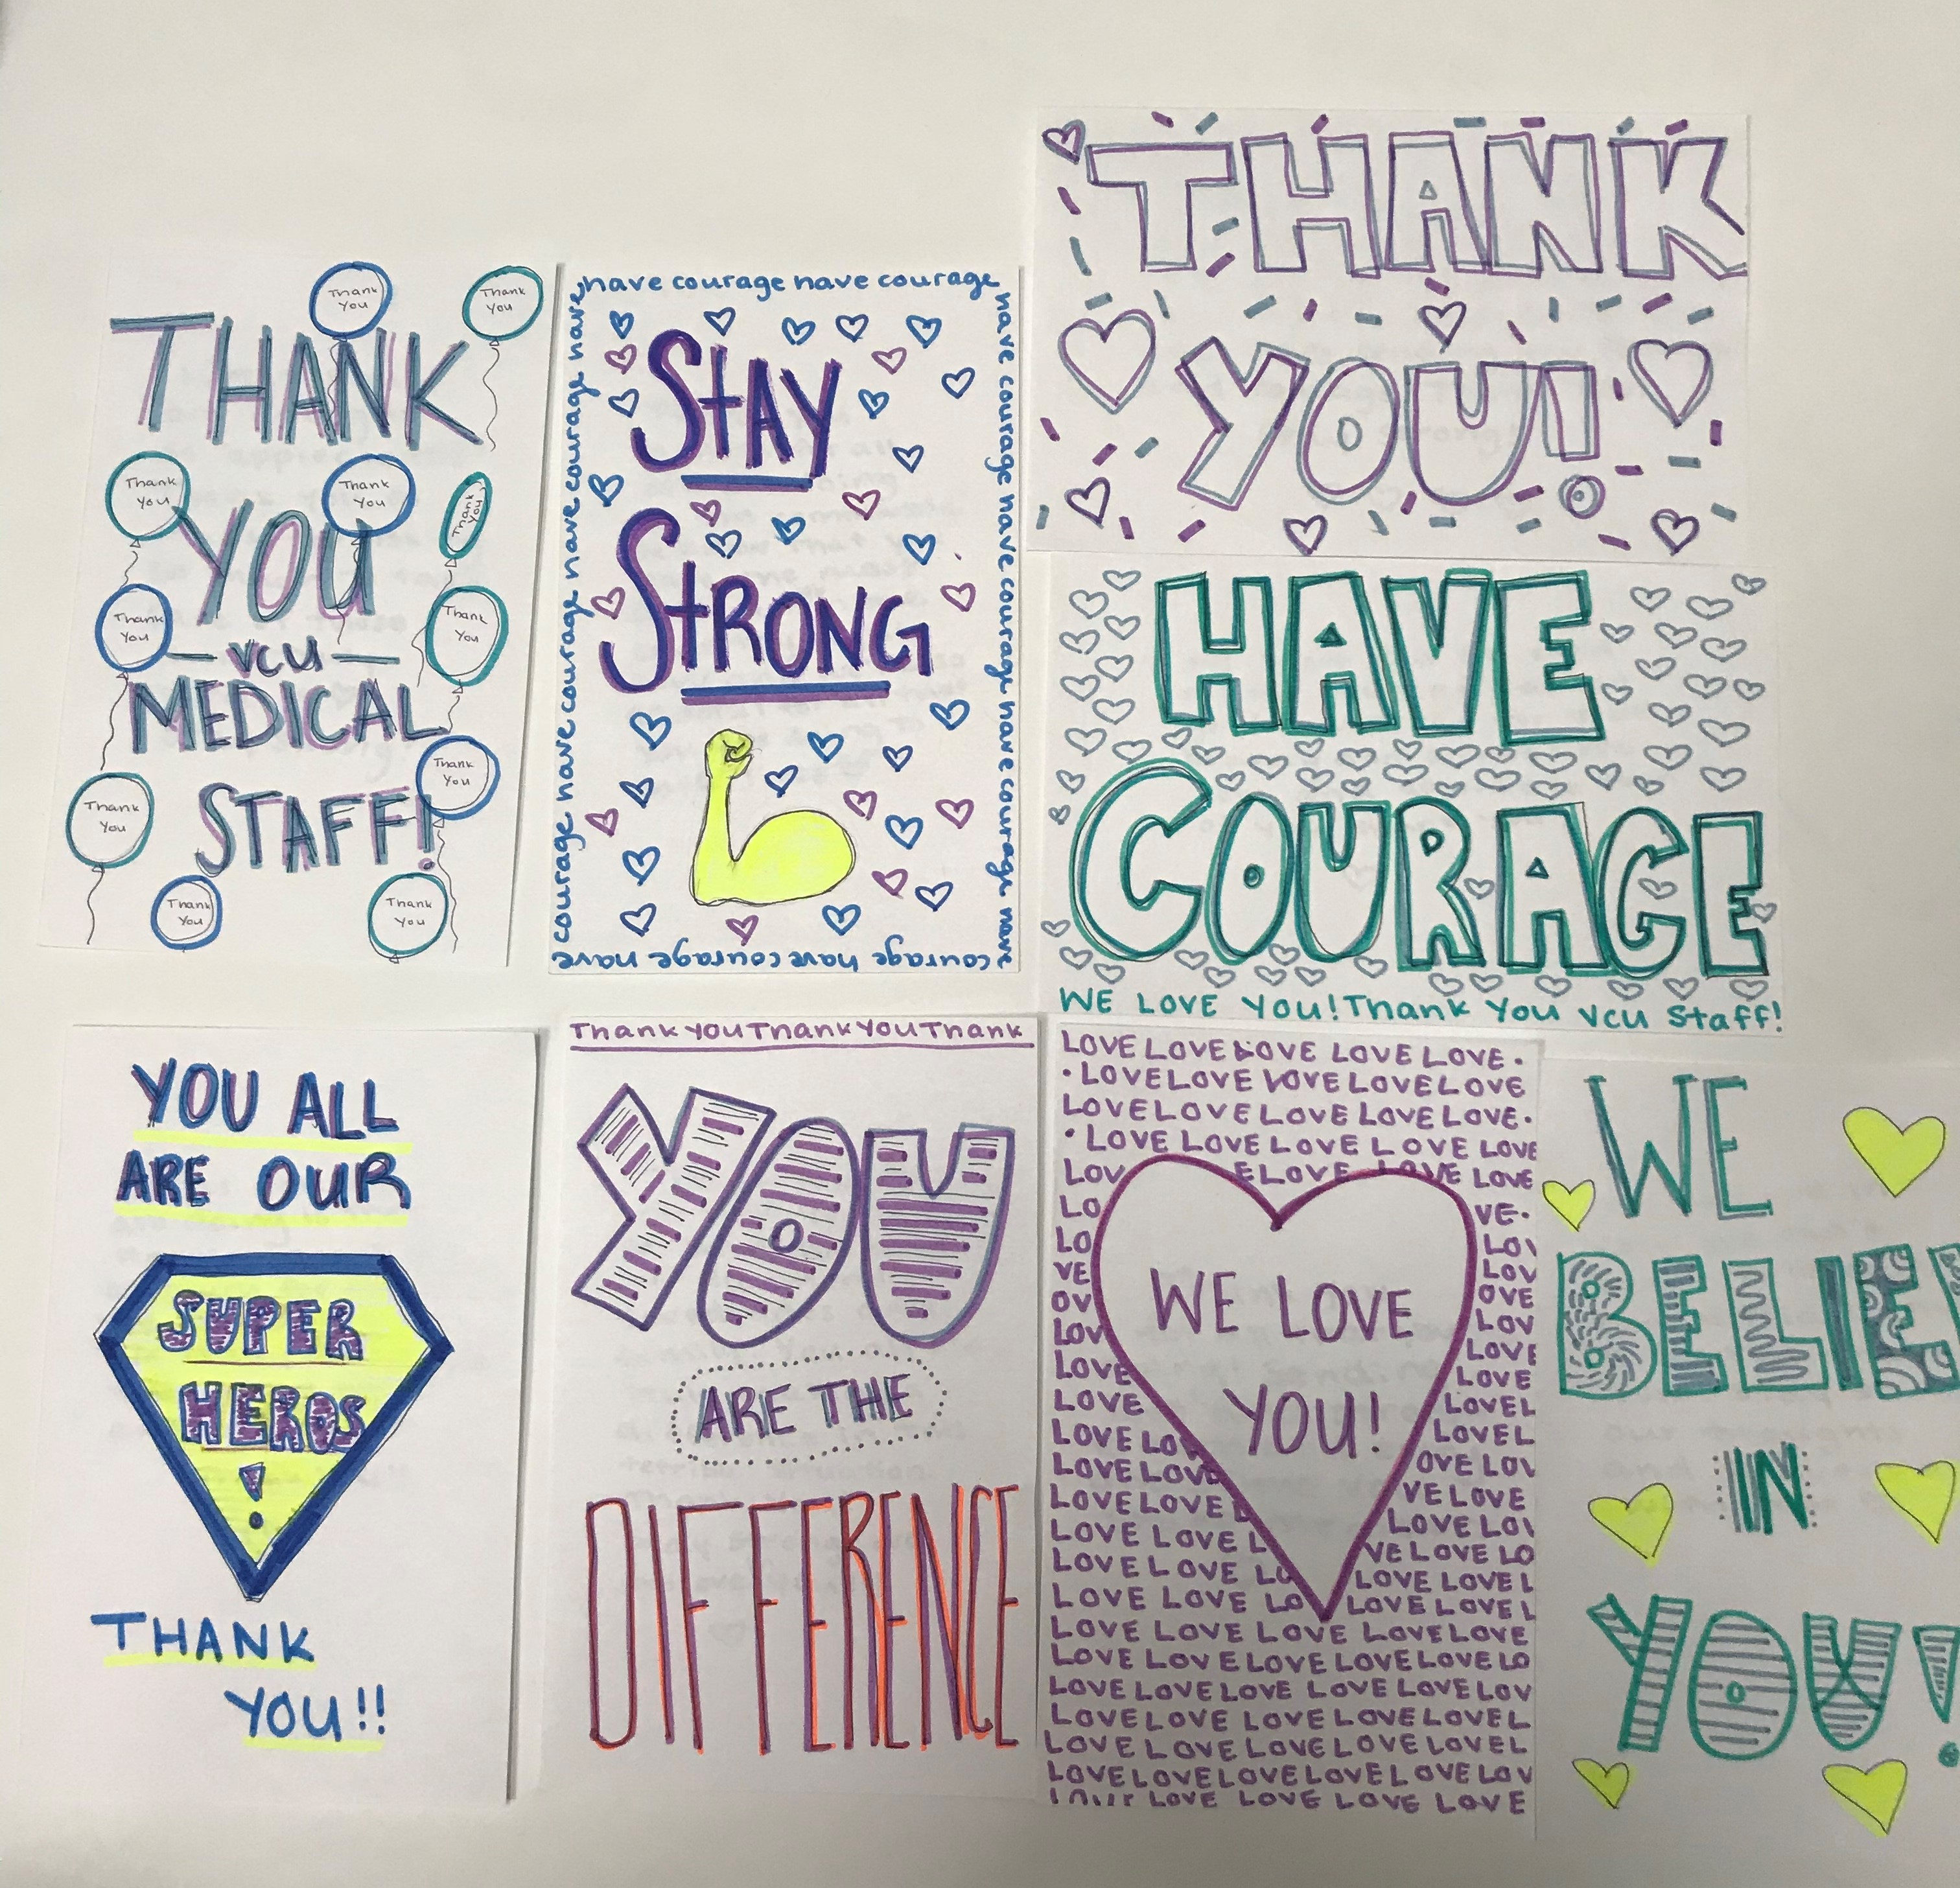 Thank you notes collage